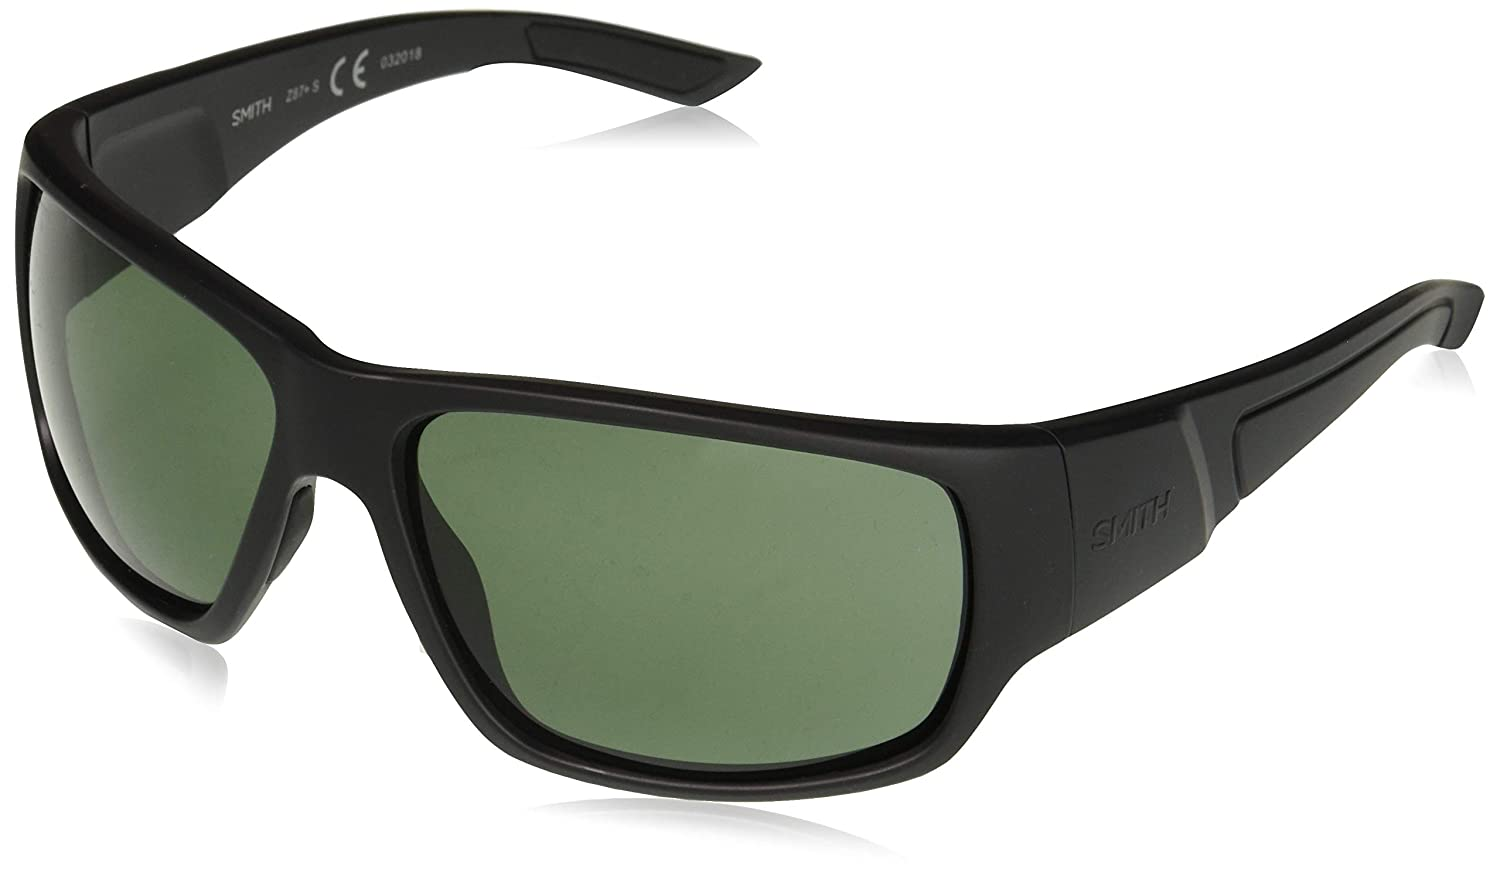 59806e54929dd Amazon.com   Smith Optics Elite Dragstrip Chromapop+ Polarized Elite  Sunglasses